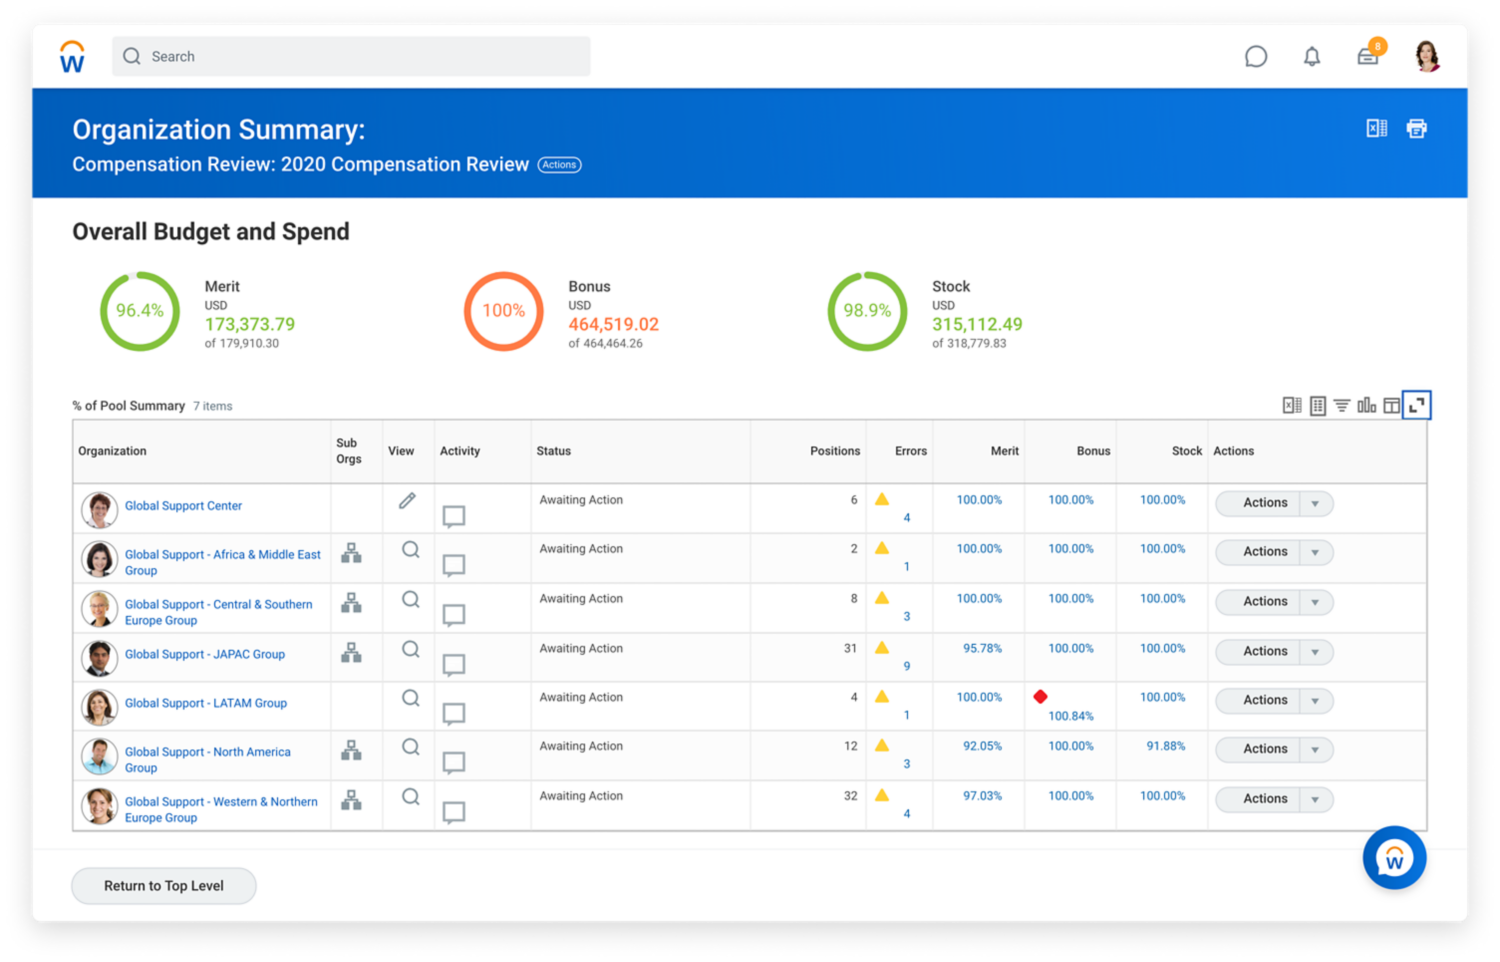 Compensation management dashboard showing organisation summary with overall budget and spend.